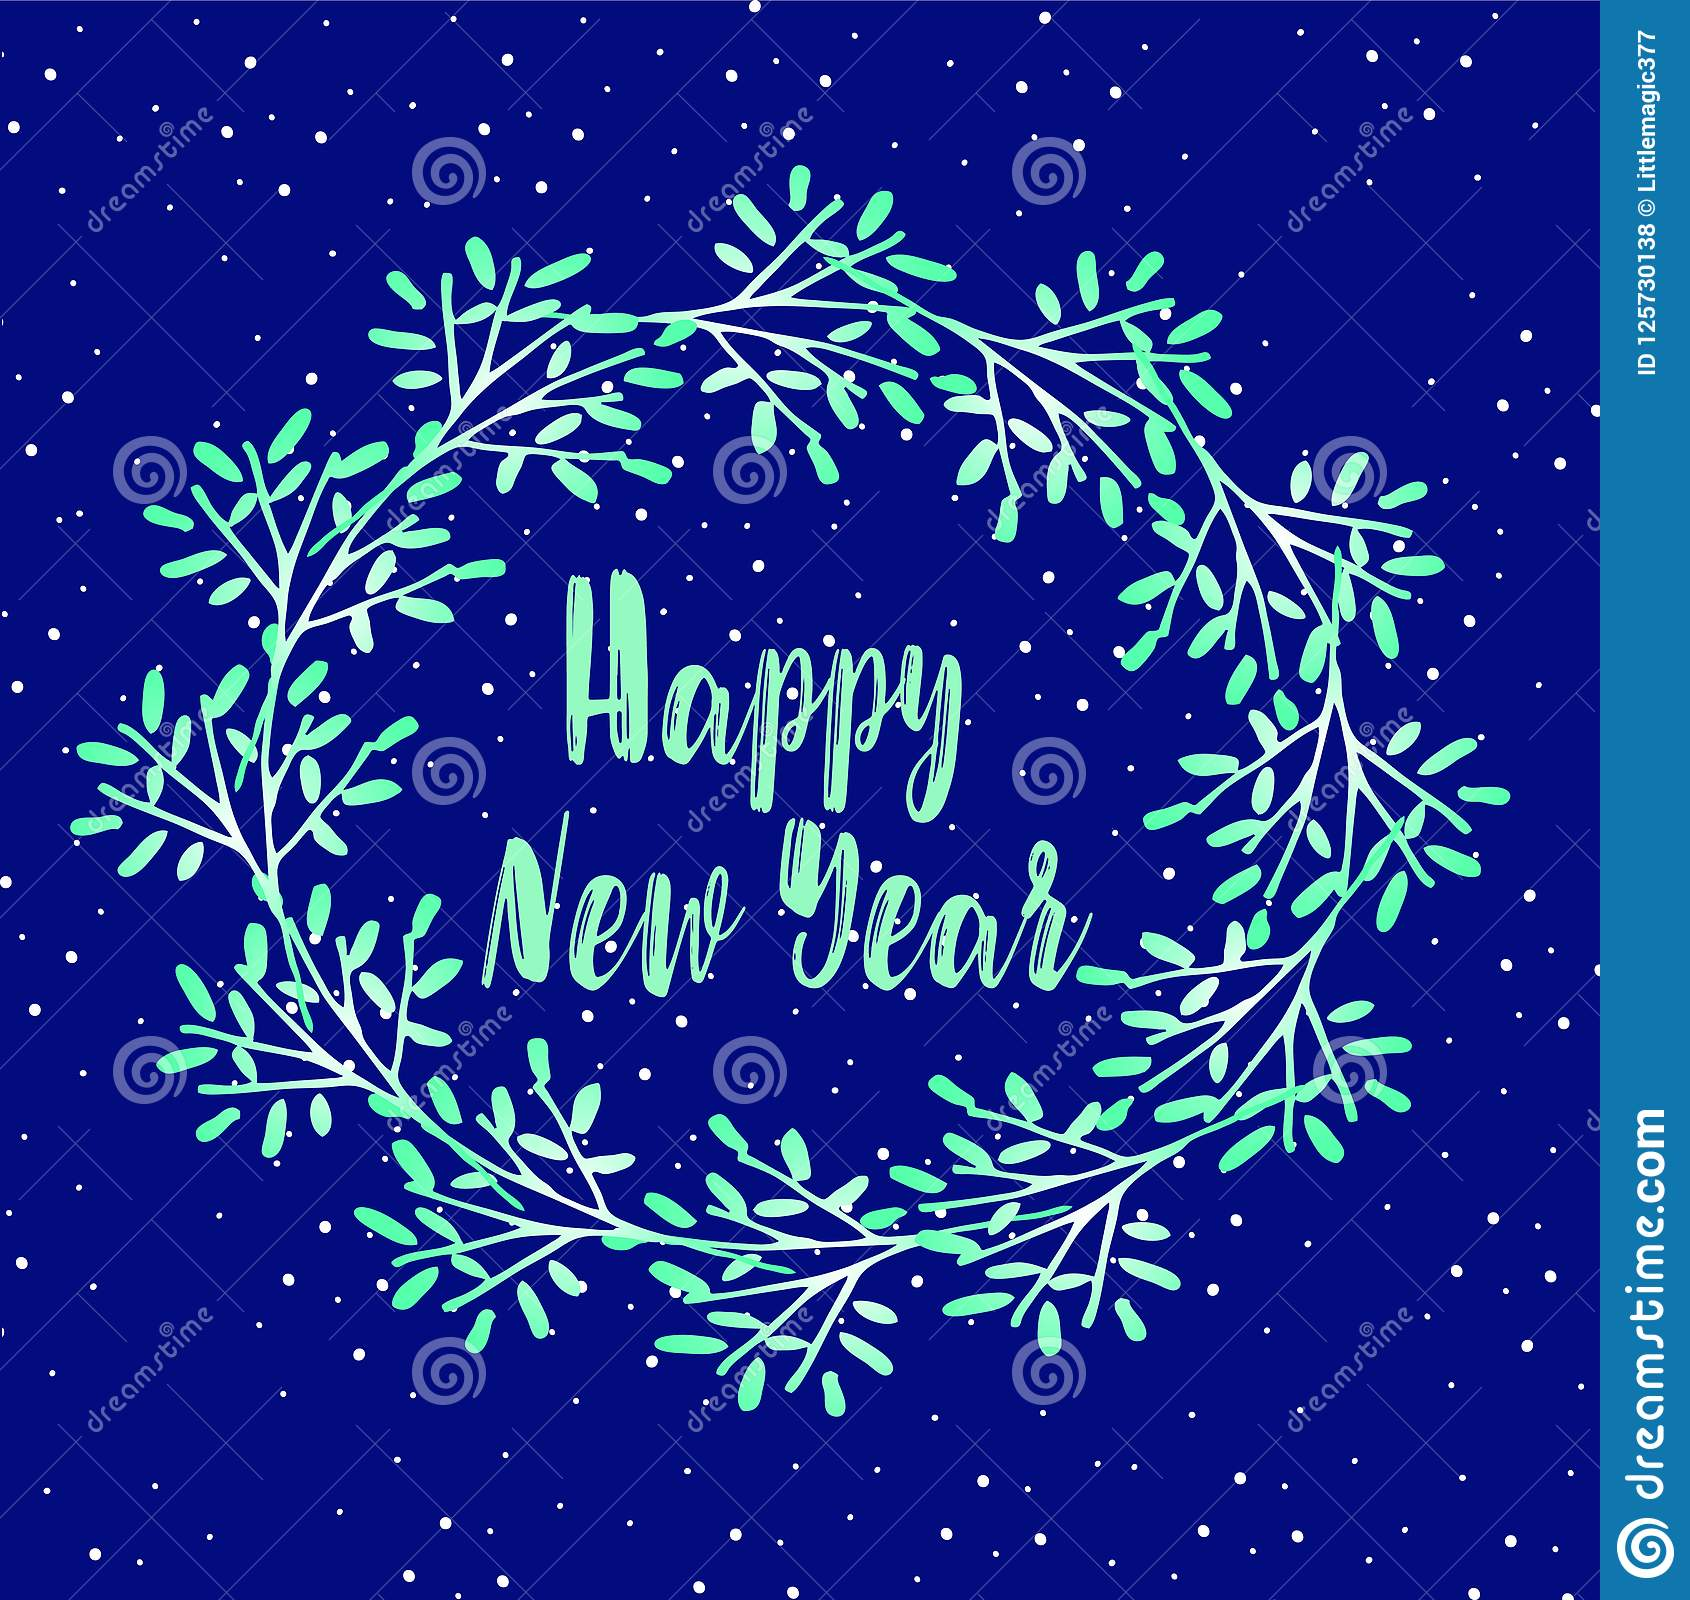 new year greeting card christmas wreath of twigs on a snowy blue background